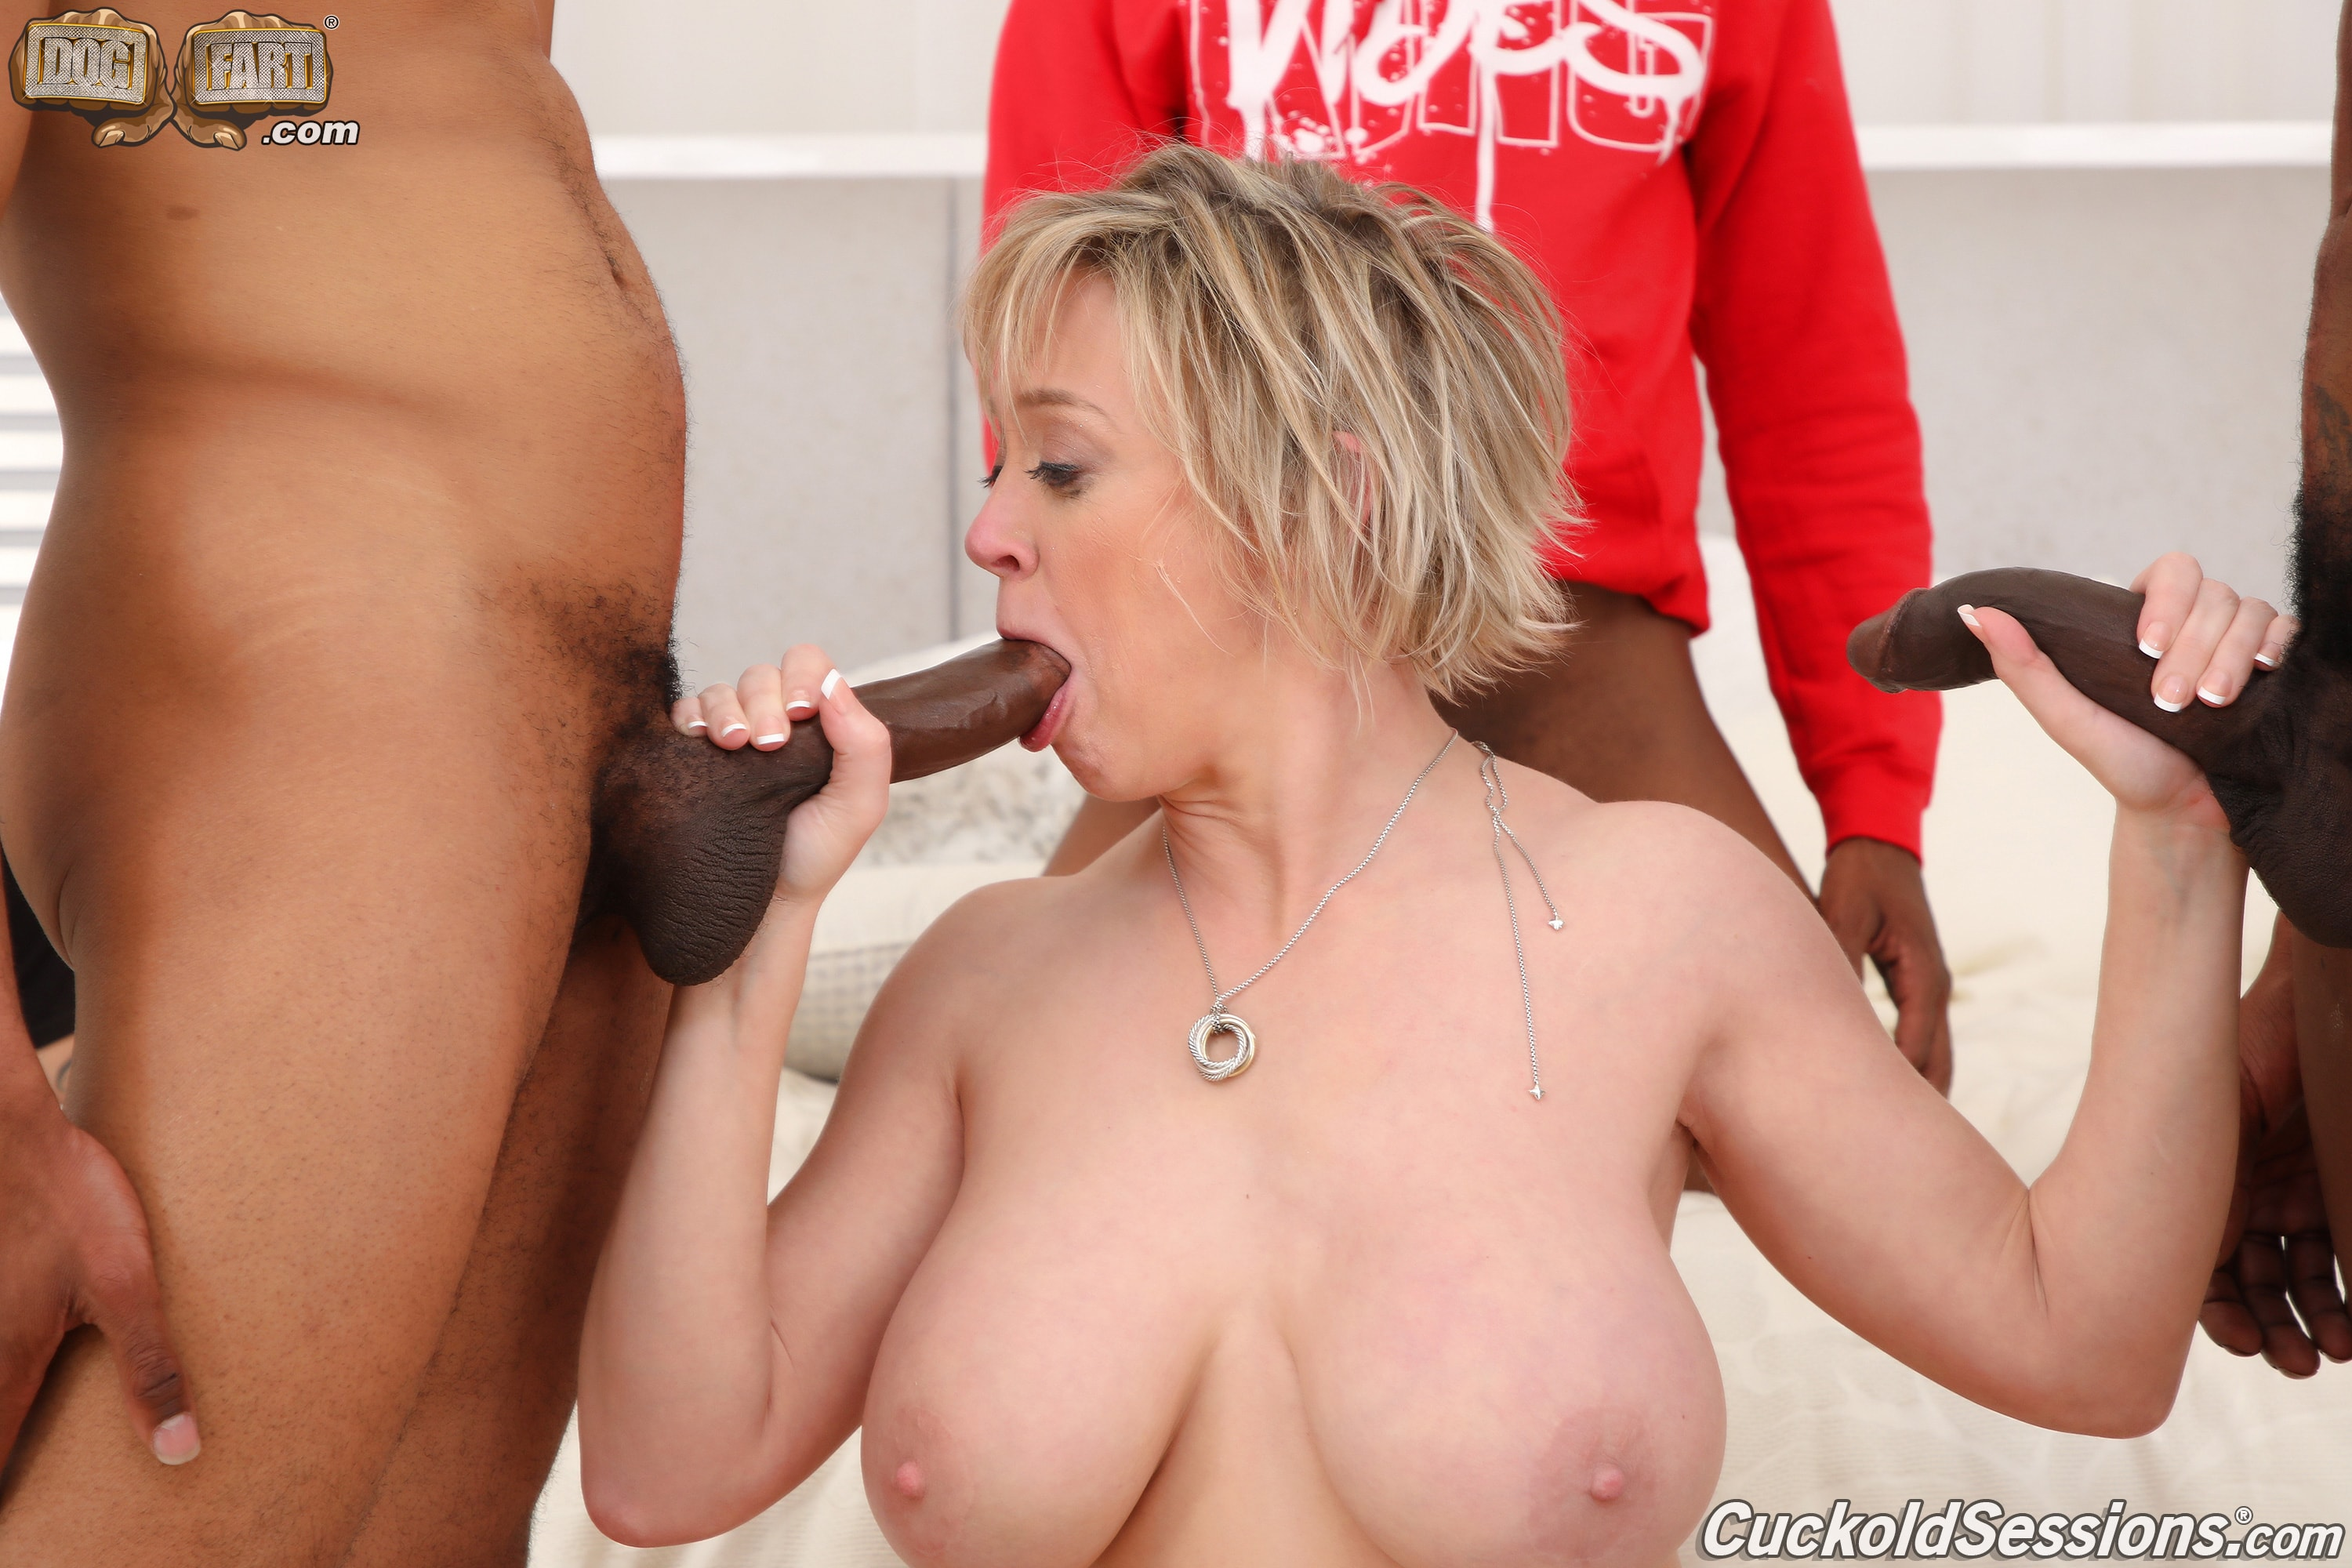 Dogfart '- Cuckold Sessions' starring Dee Williams (Photo 9)